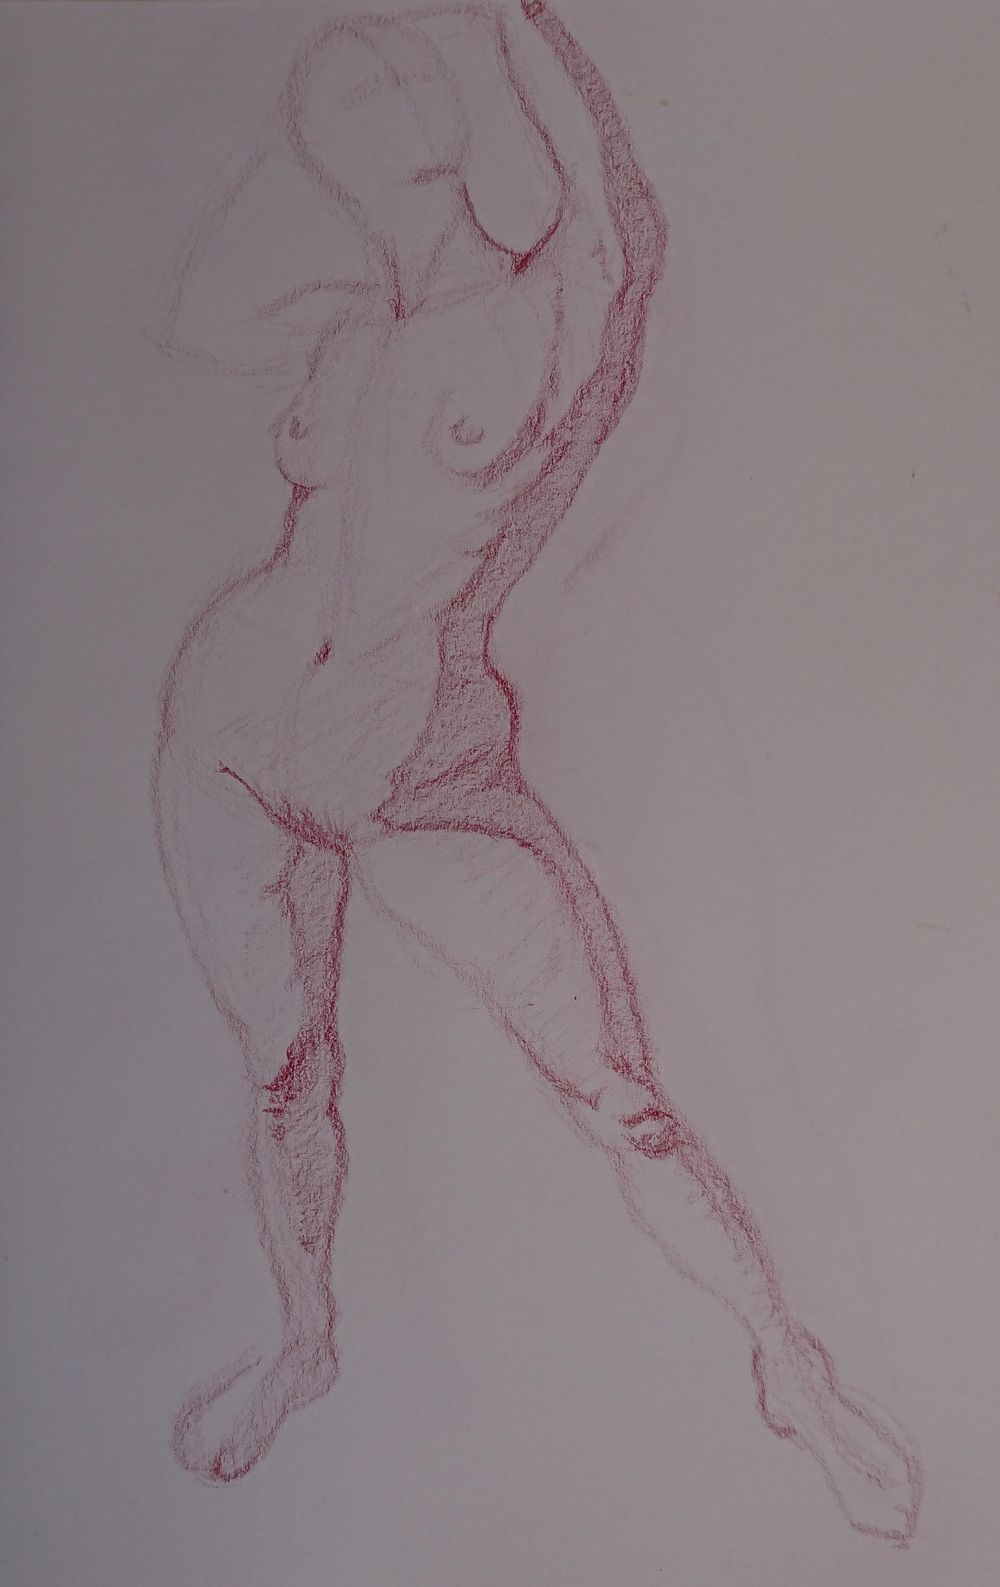 Gesture and the stuff I learned! - image 1 - student project